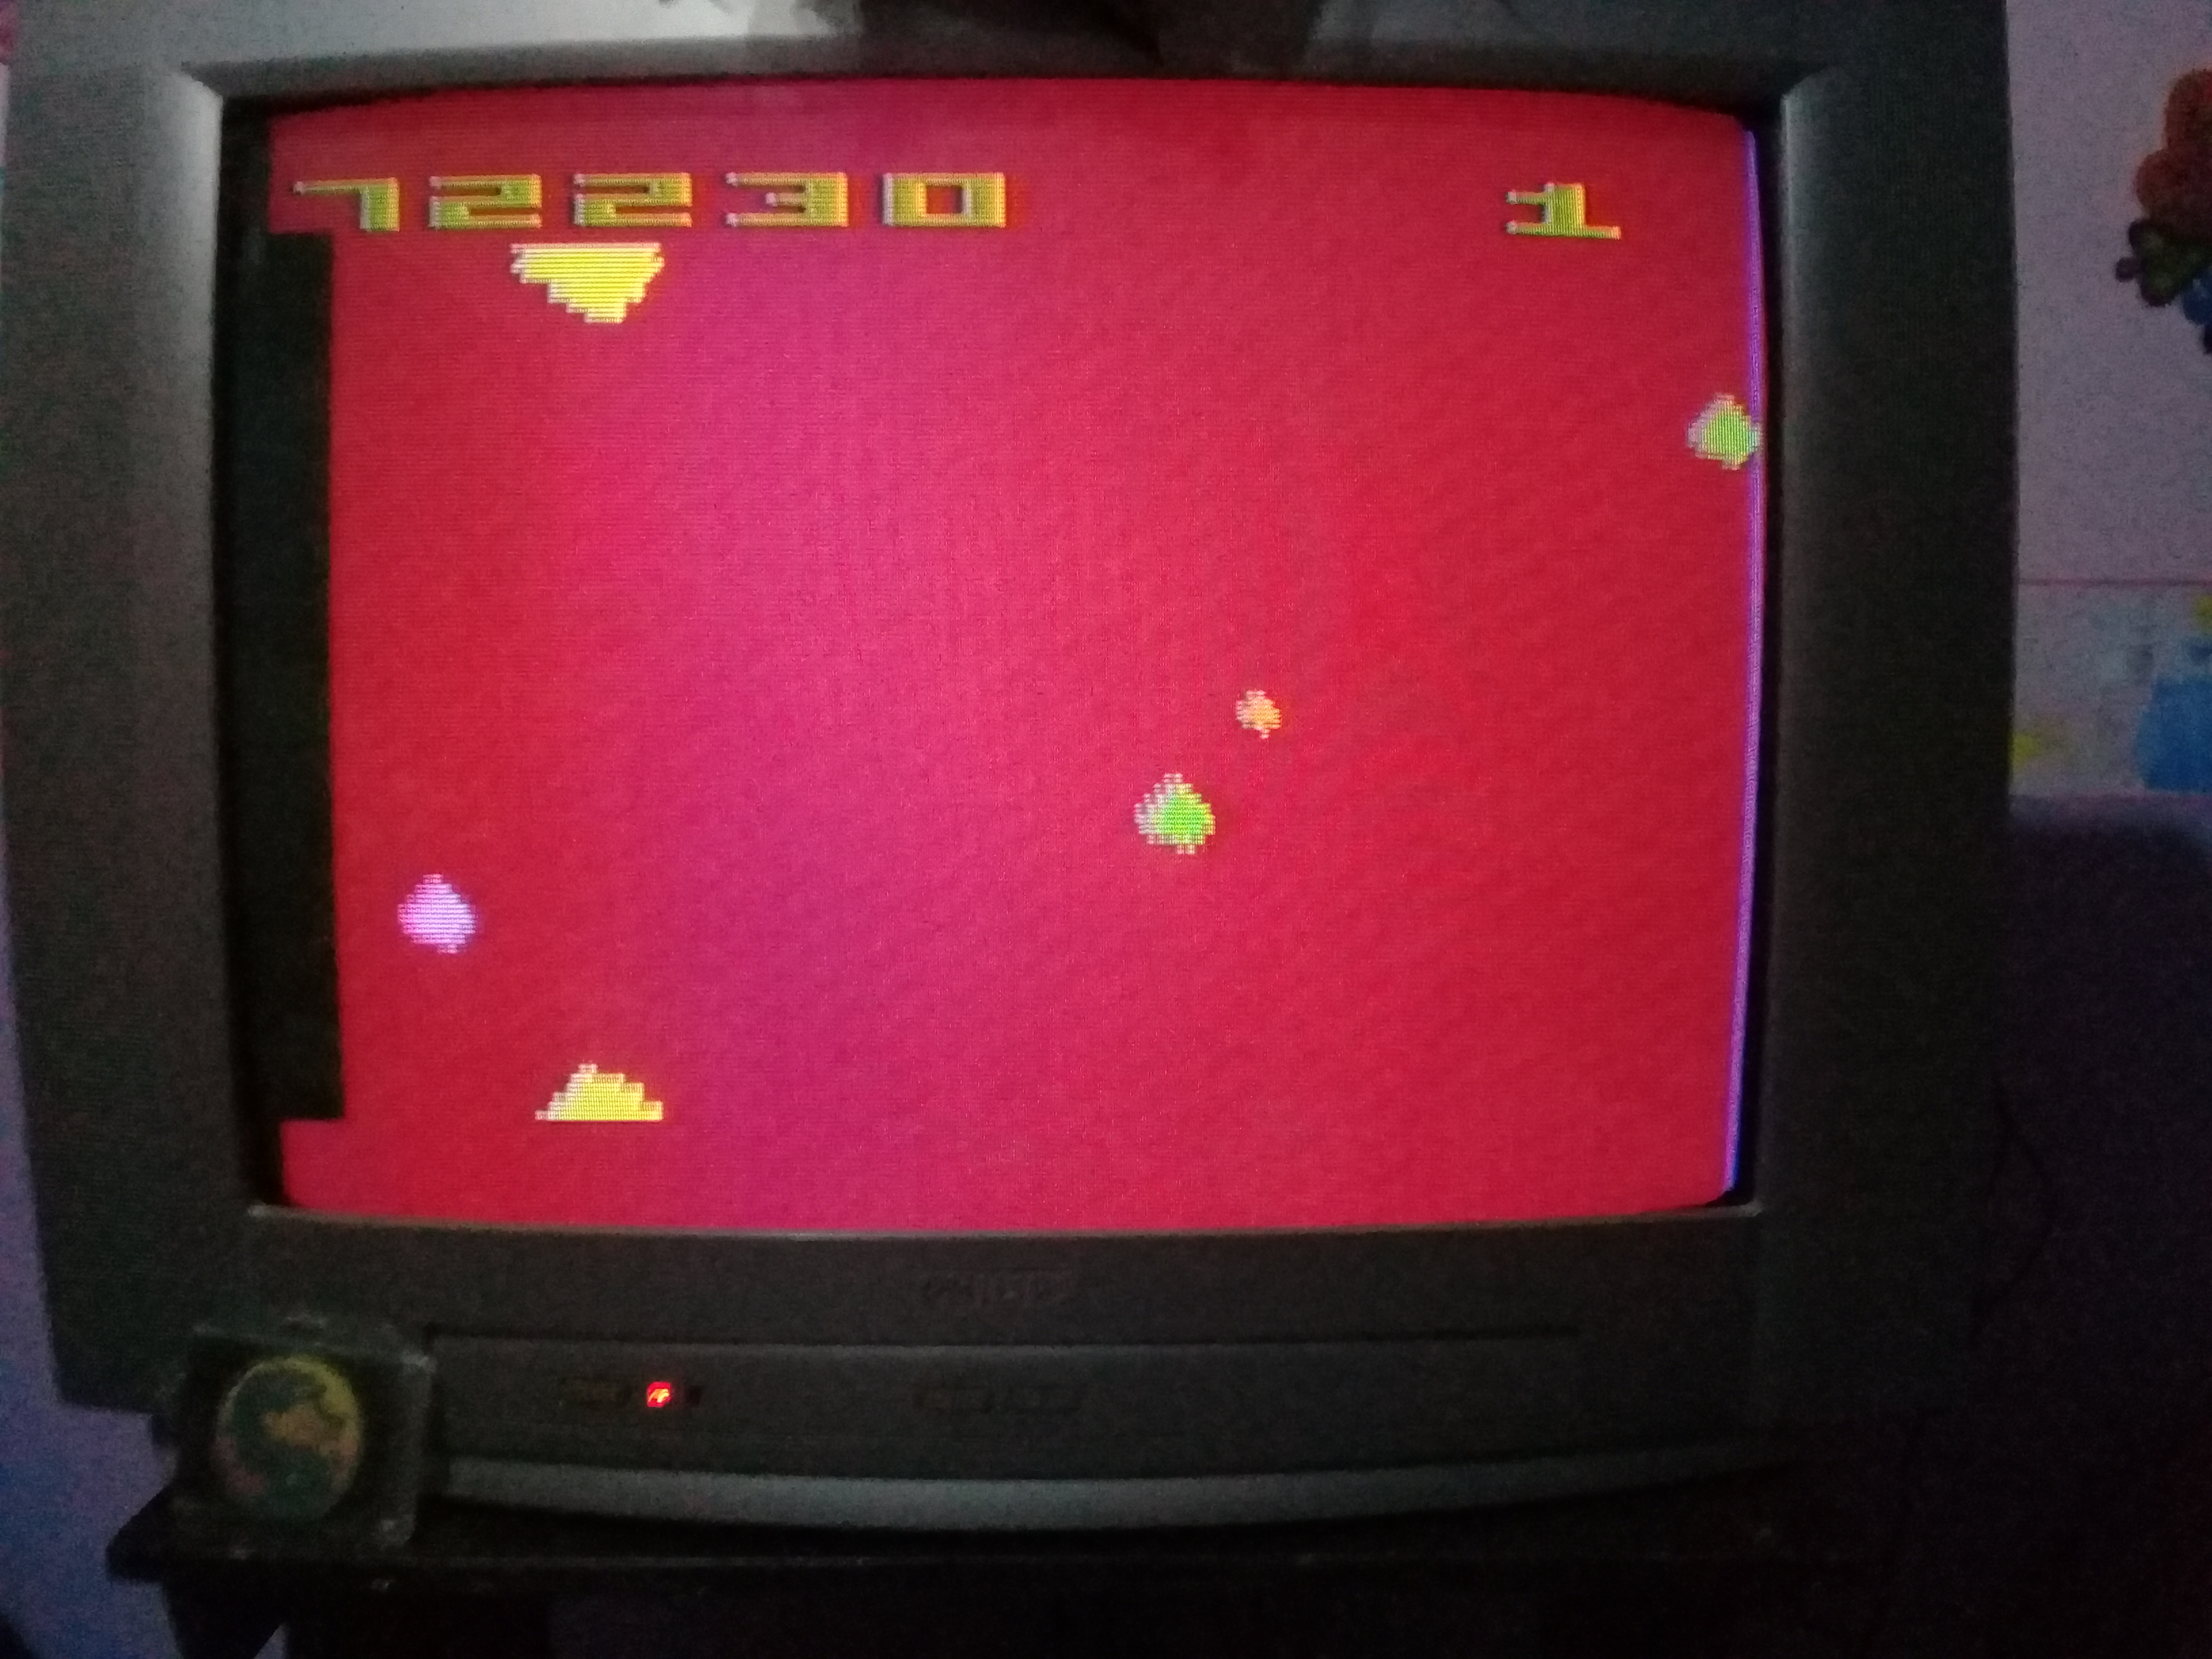 omargeddon: Asteroids: Game 32 (Atari 2600 Novice/B) 72,230 points on 2020-02-16 08:45:15